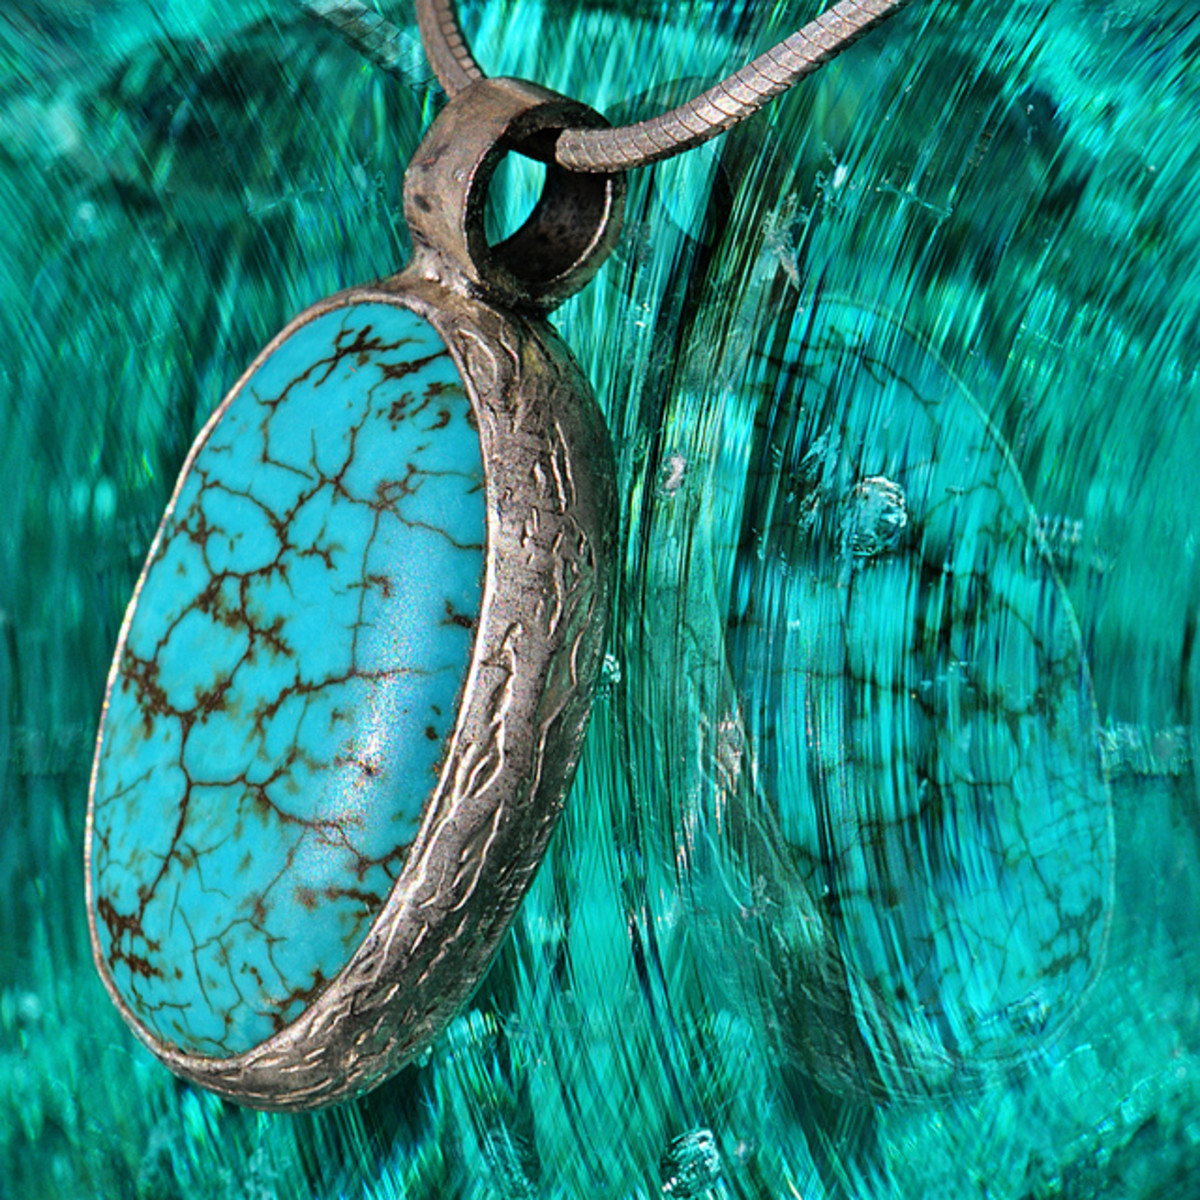 A turquoise pendant can easily be worn over the throat chakra.